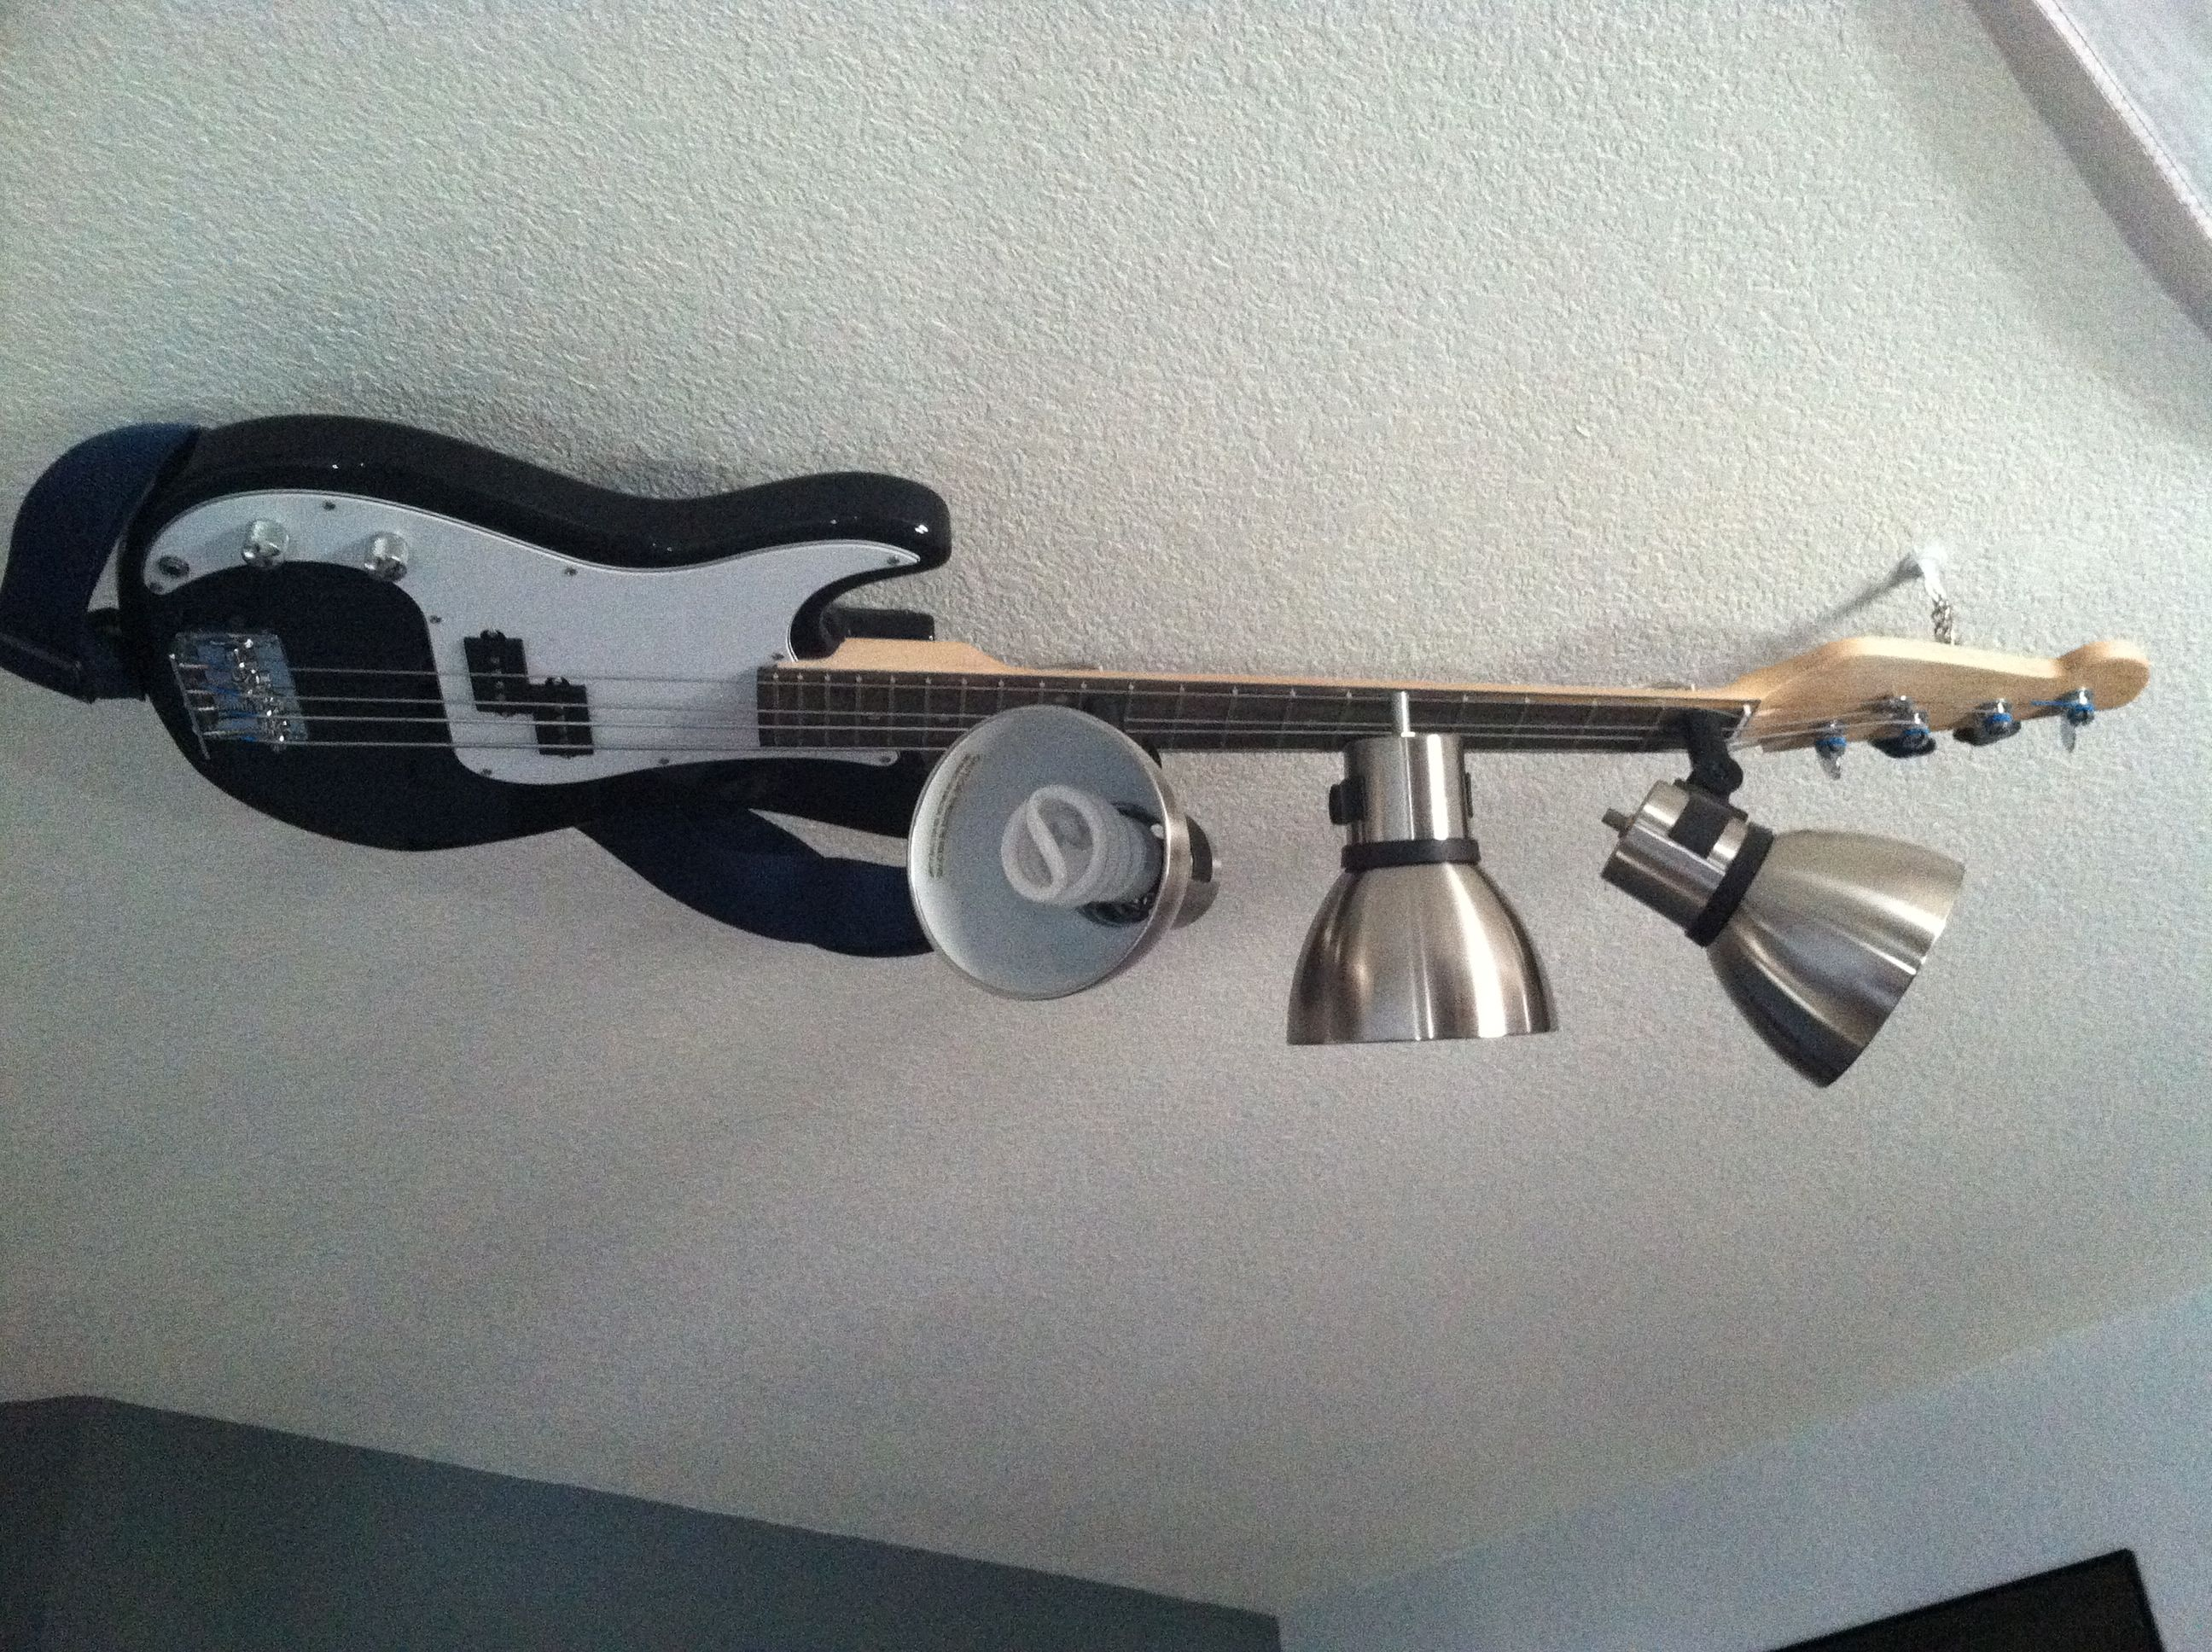 Guitar lamp made by Fred Ludwig - contact whatfredsaid@yahoo com